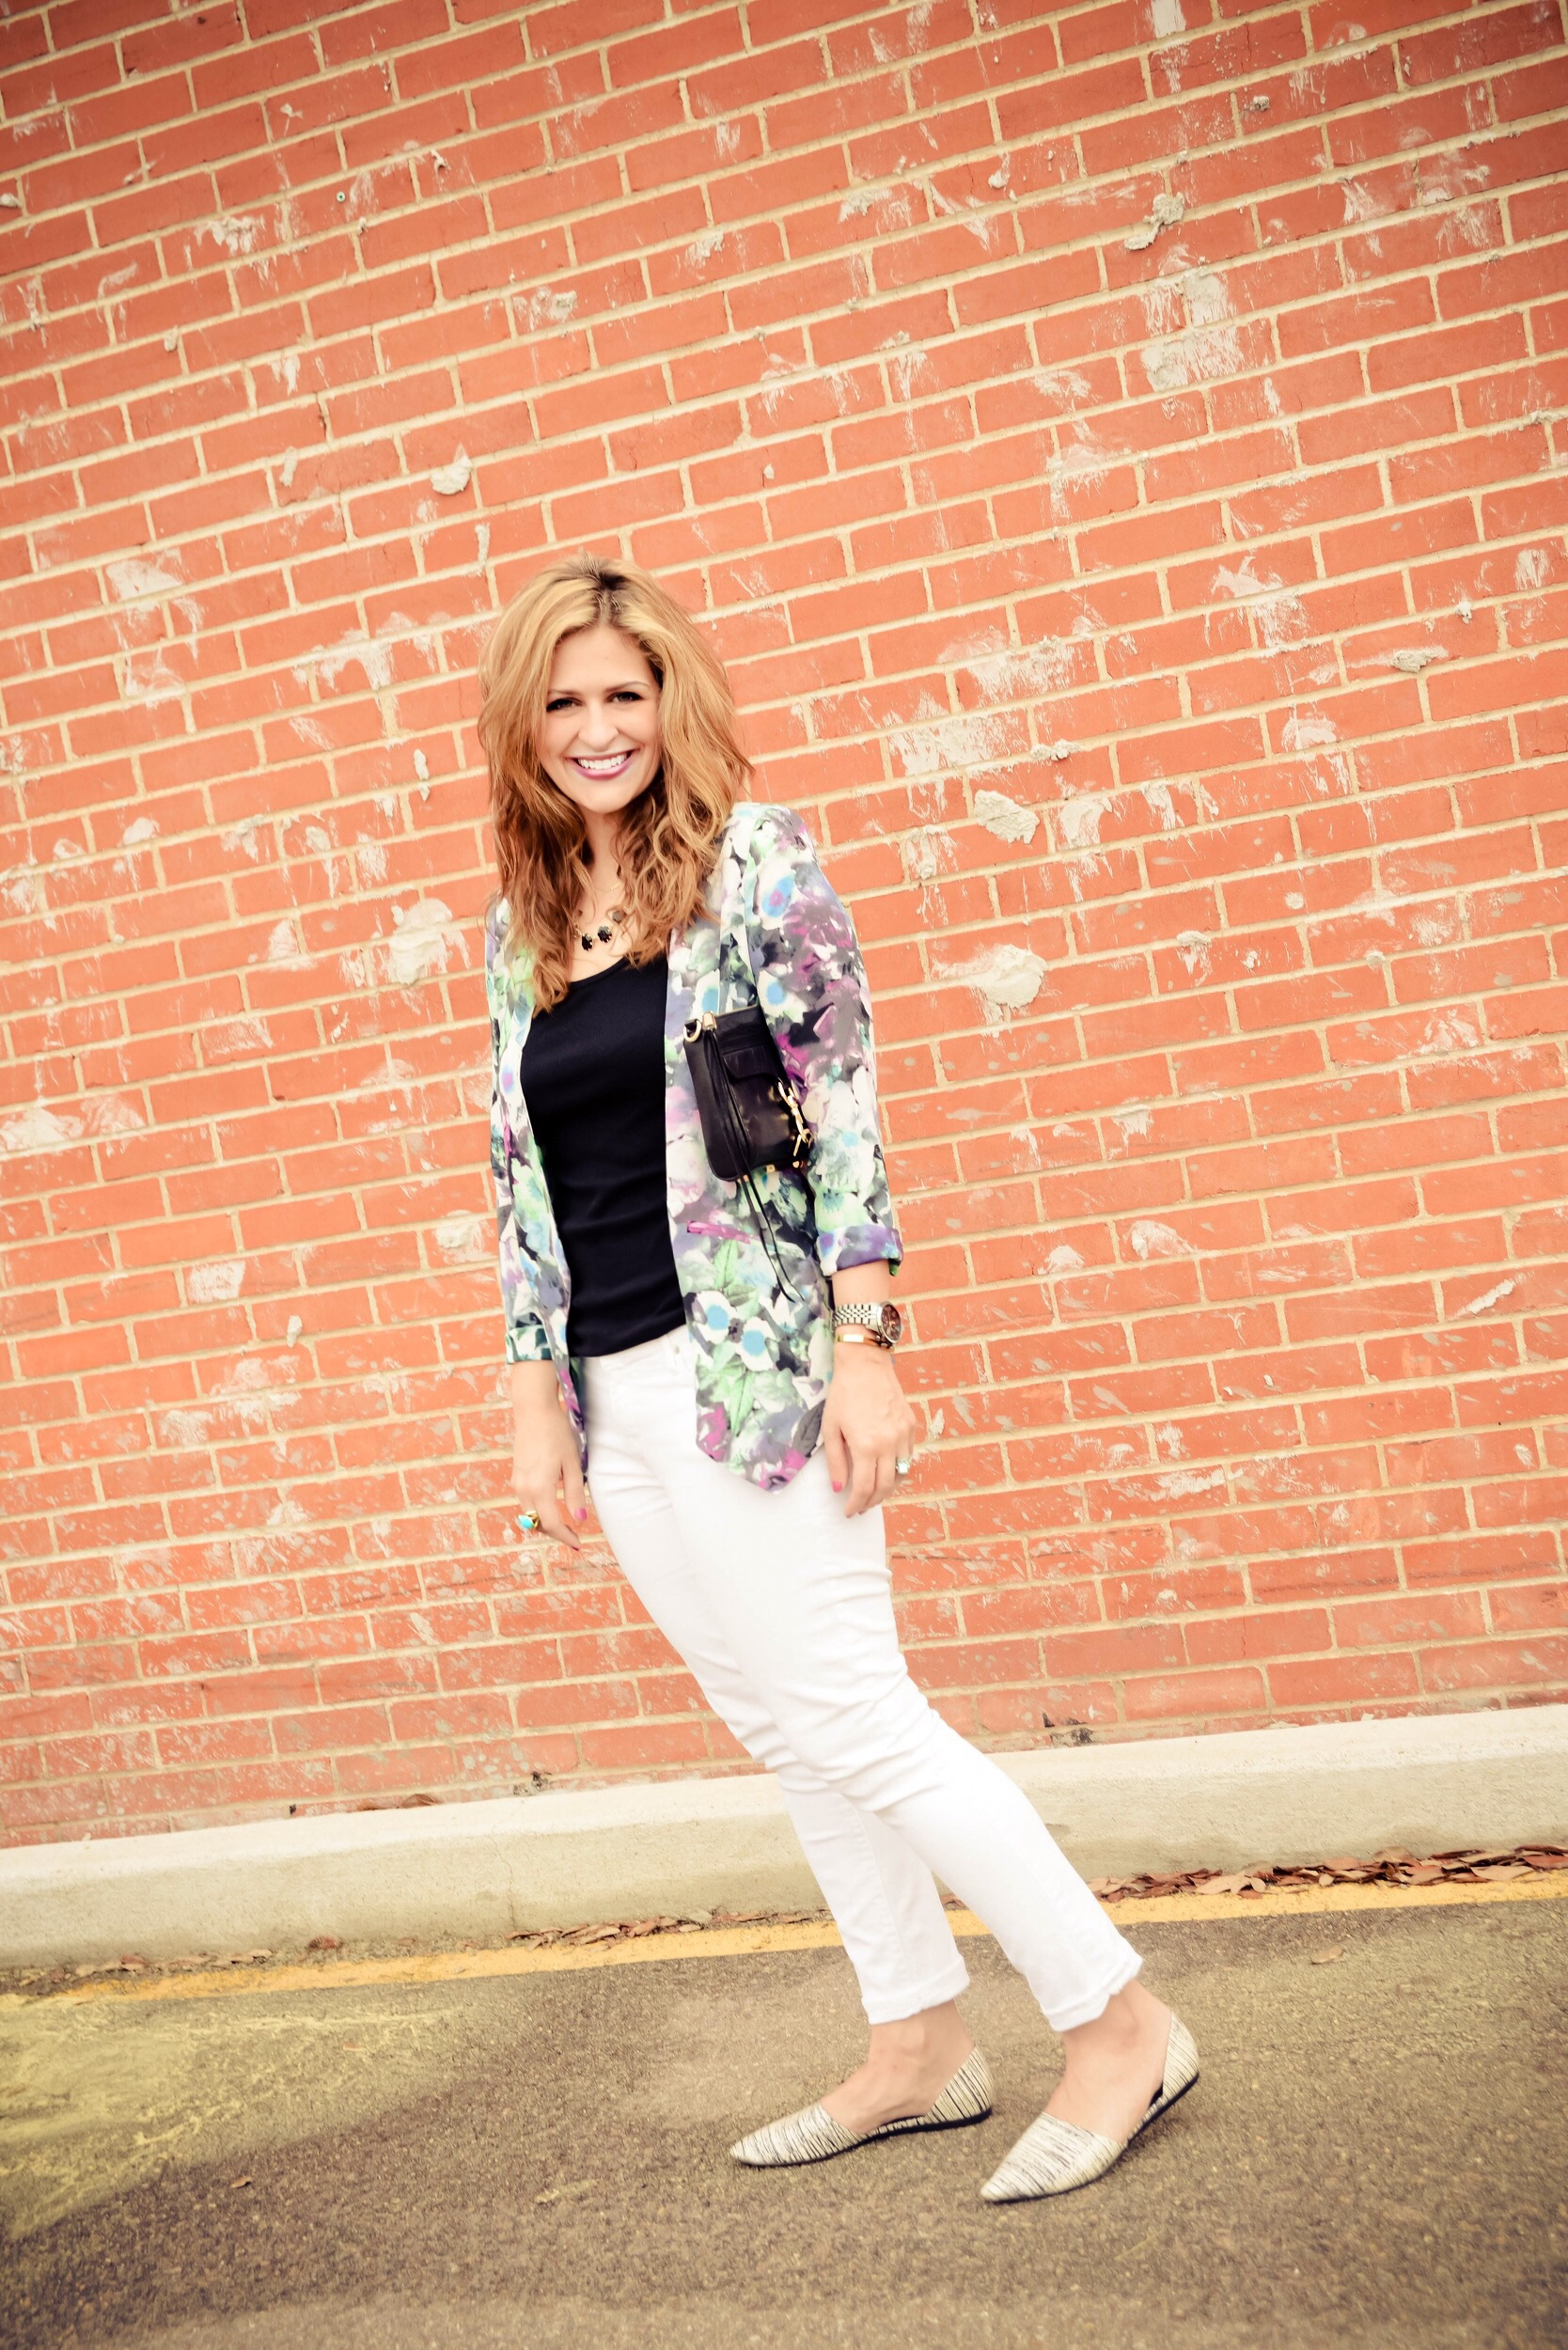 Jeans:  Gap  Camisole:  CamiNYC  Jacket:  Astr Shoes: Vince (sold out similar  here ) Necklace: Kendra Scott (sold out similar option  here ) Clutch:  Rebecca Minkoff